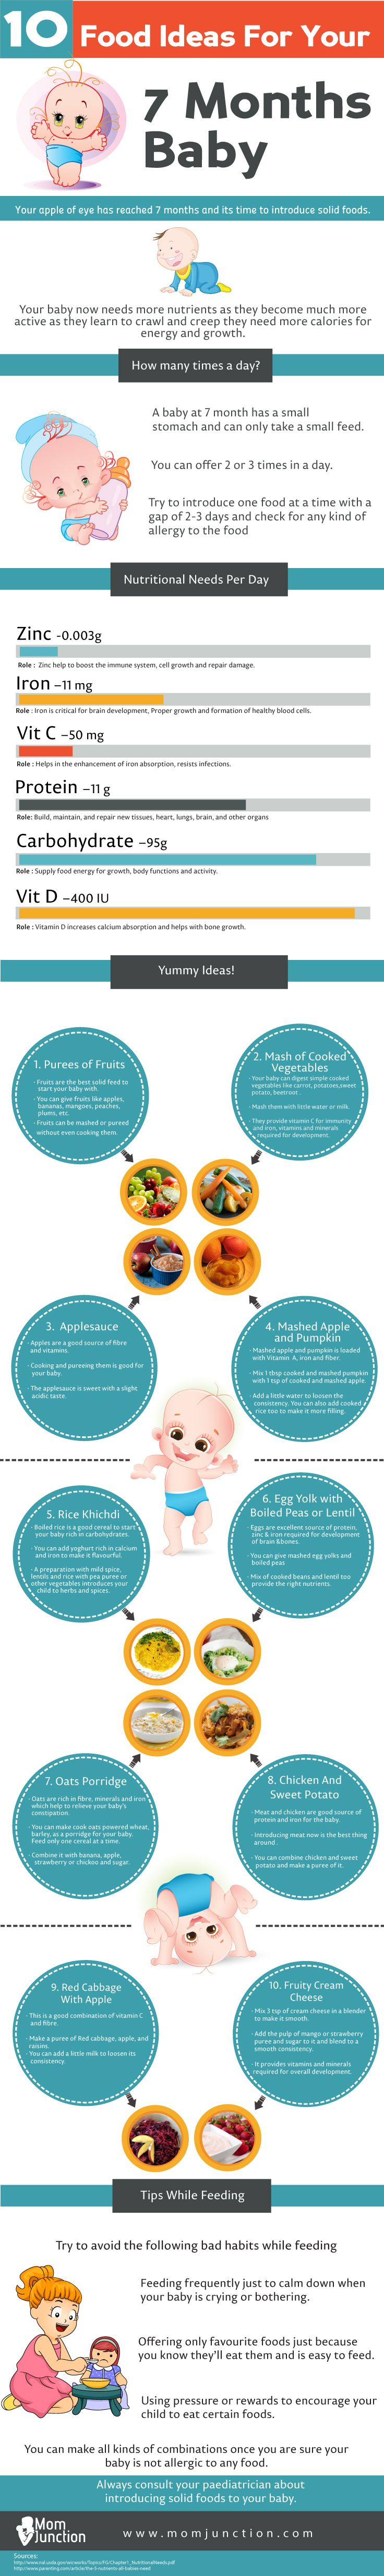 Top 10 Yummy Food Ideas For Your 7 Months Baby Baby food